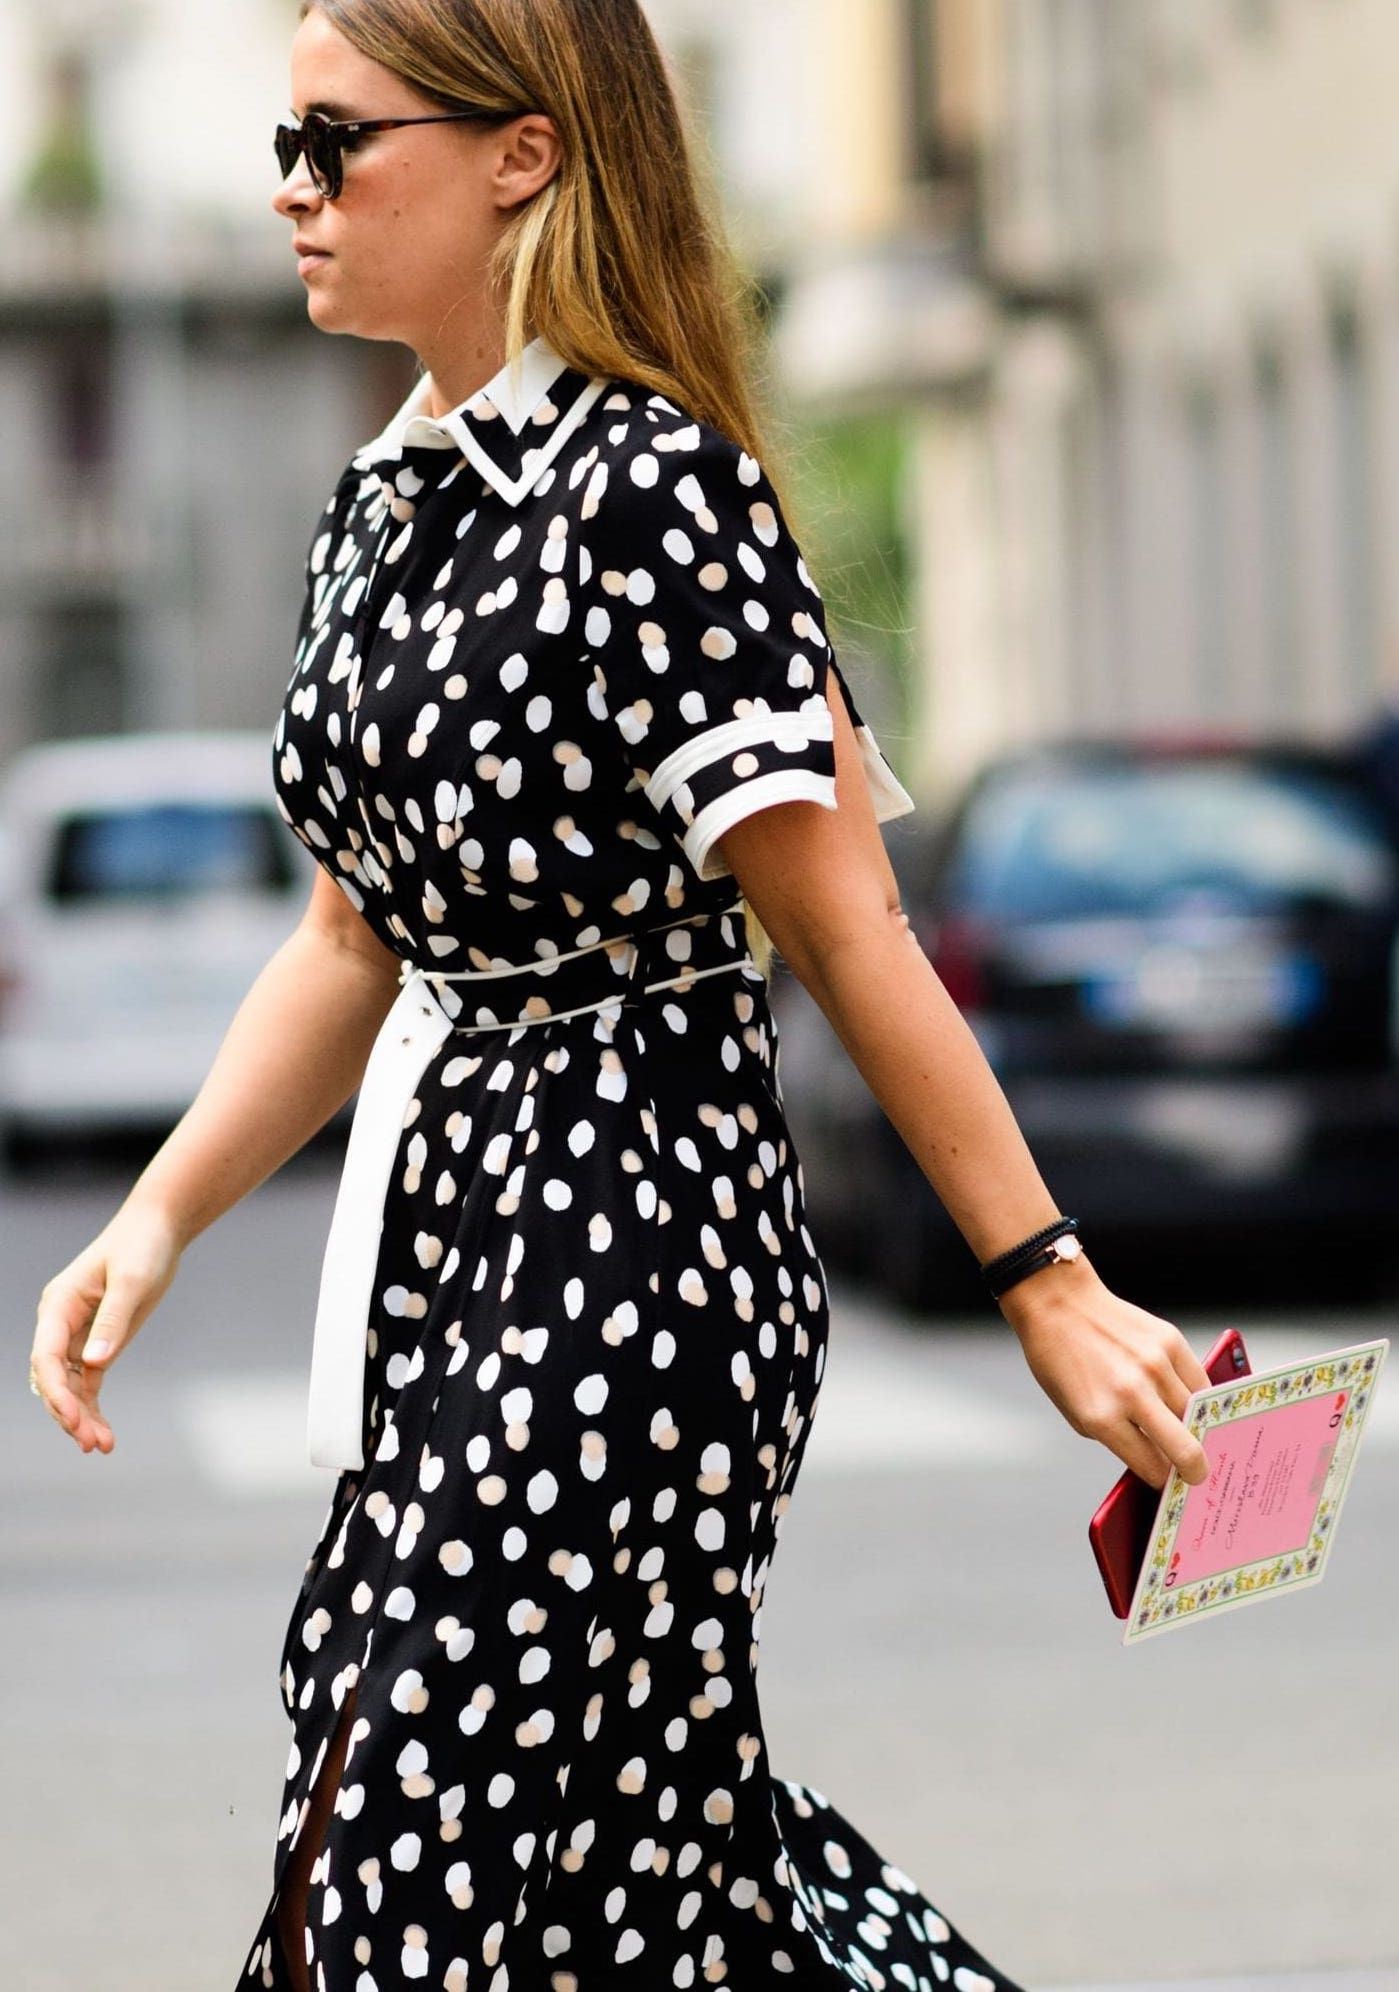 Cute Polka Dots Are On Trend Across The World Right Now So We Shouldn T Have Been Surprised To See Them At Milan Fashion Week